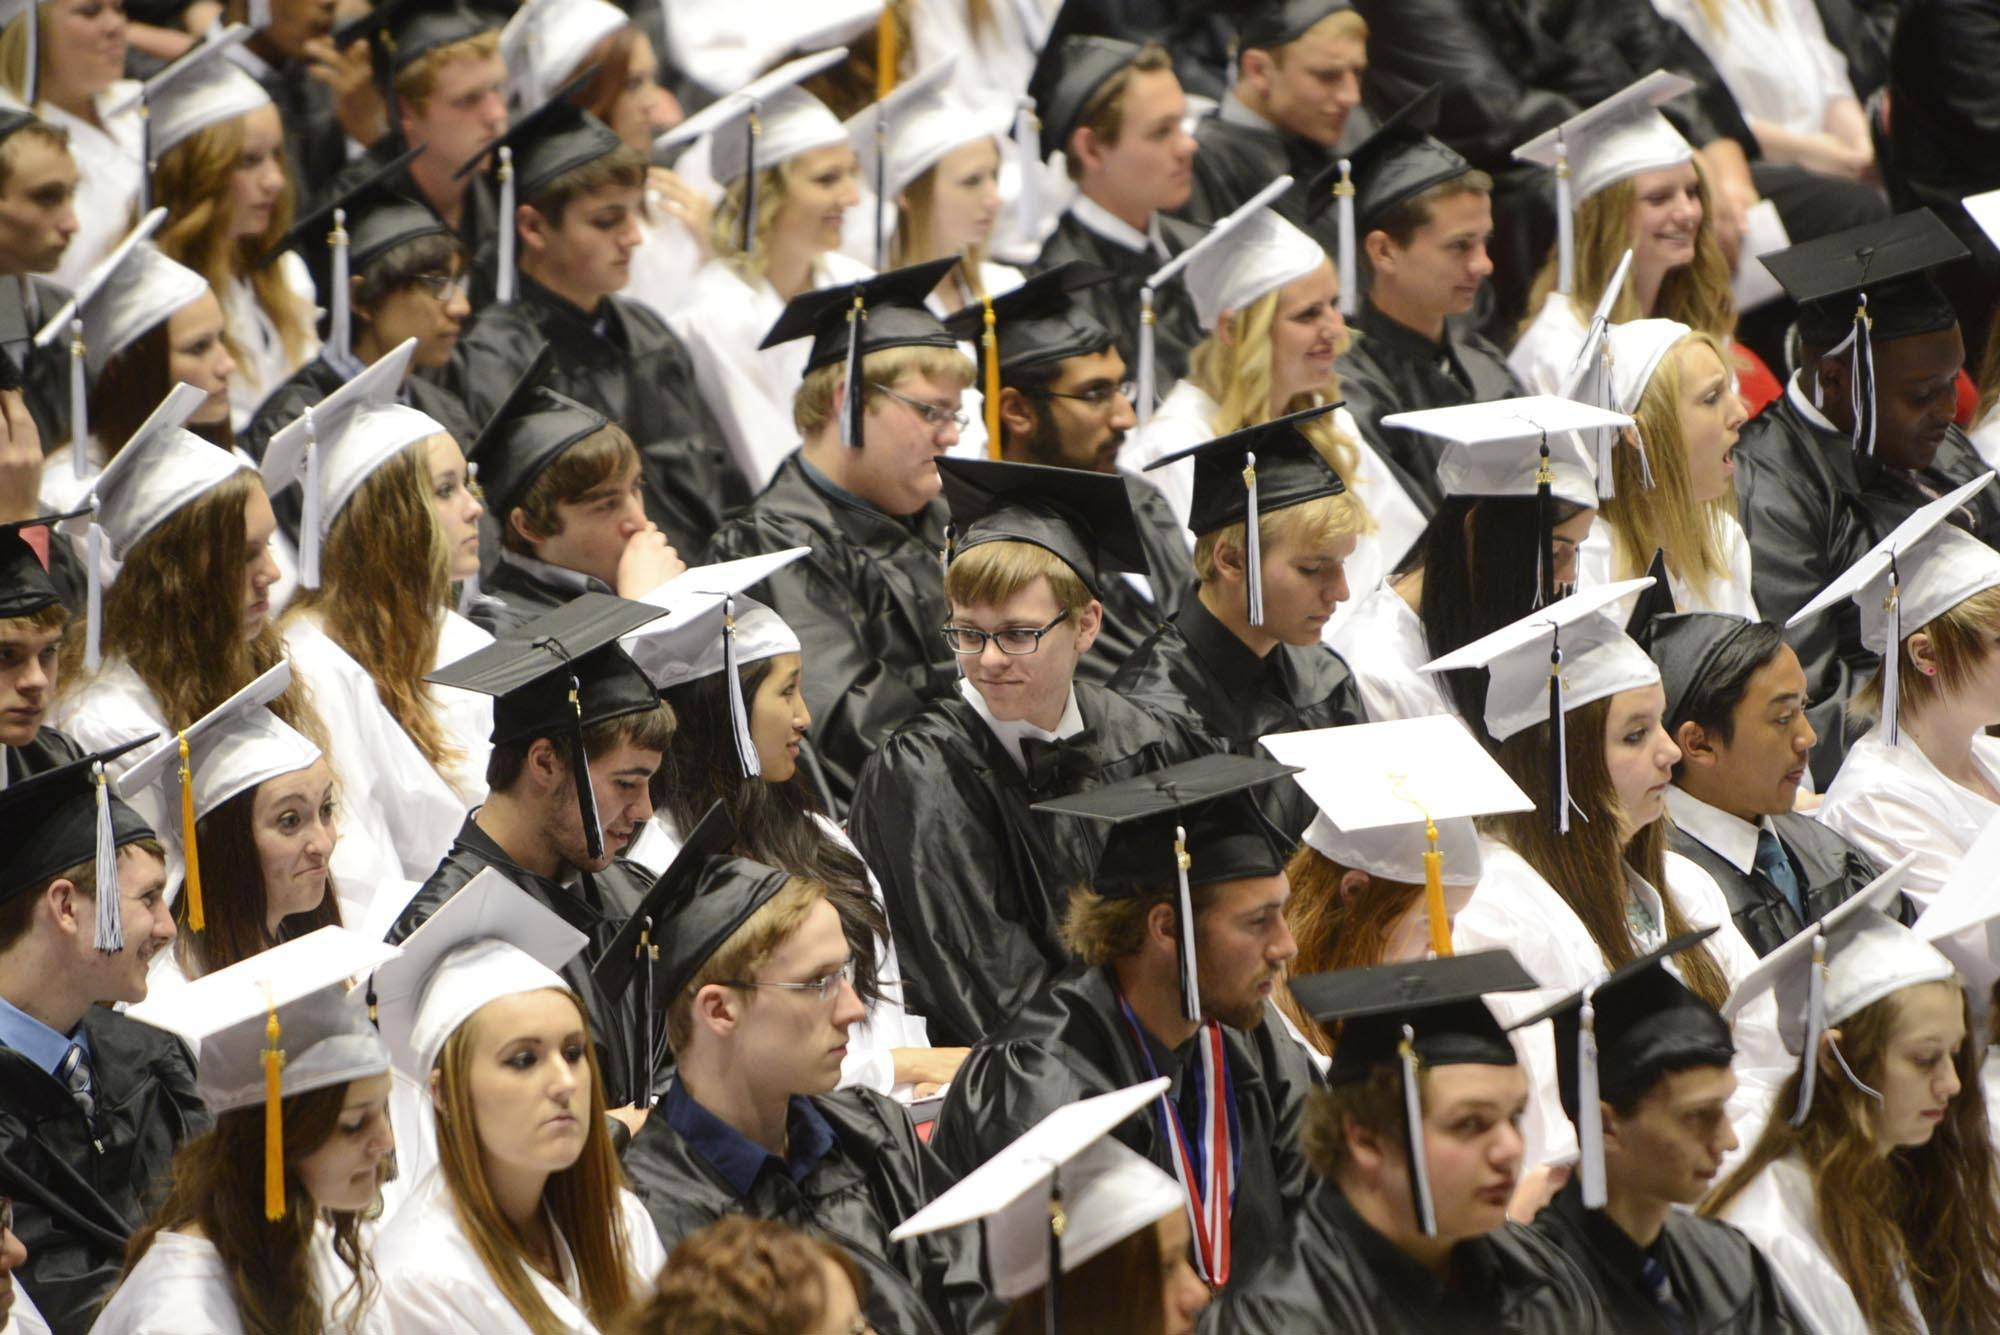 Images from the Kaneland High School graduation on Sunday, June 1st, in DeKalb.